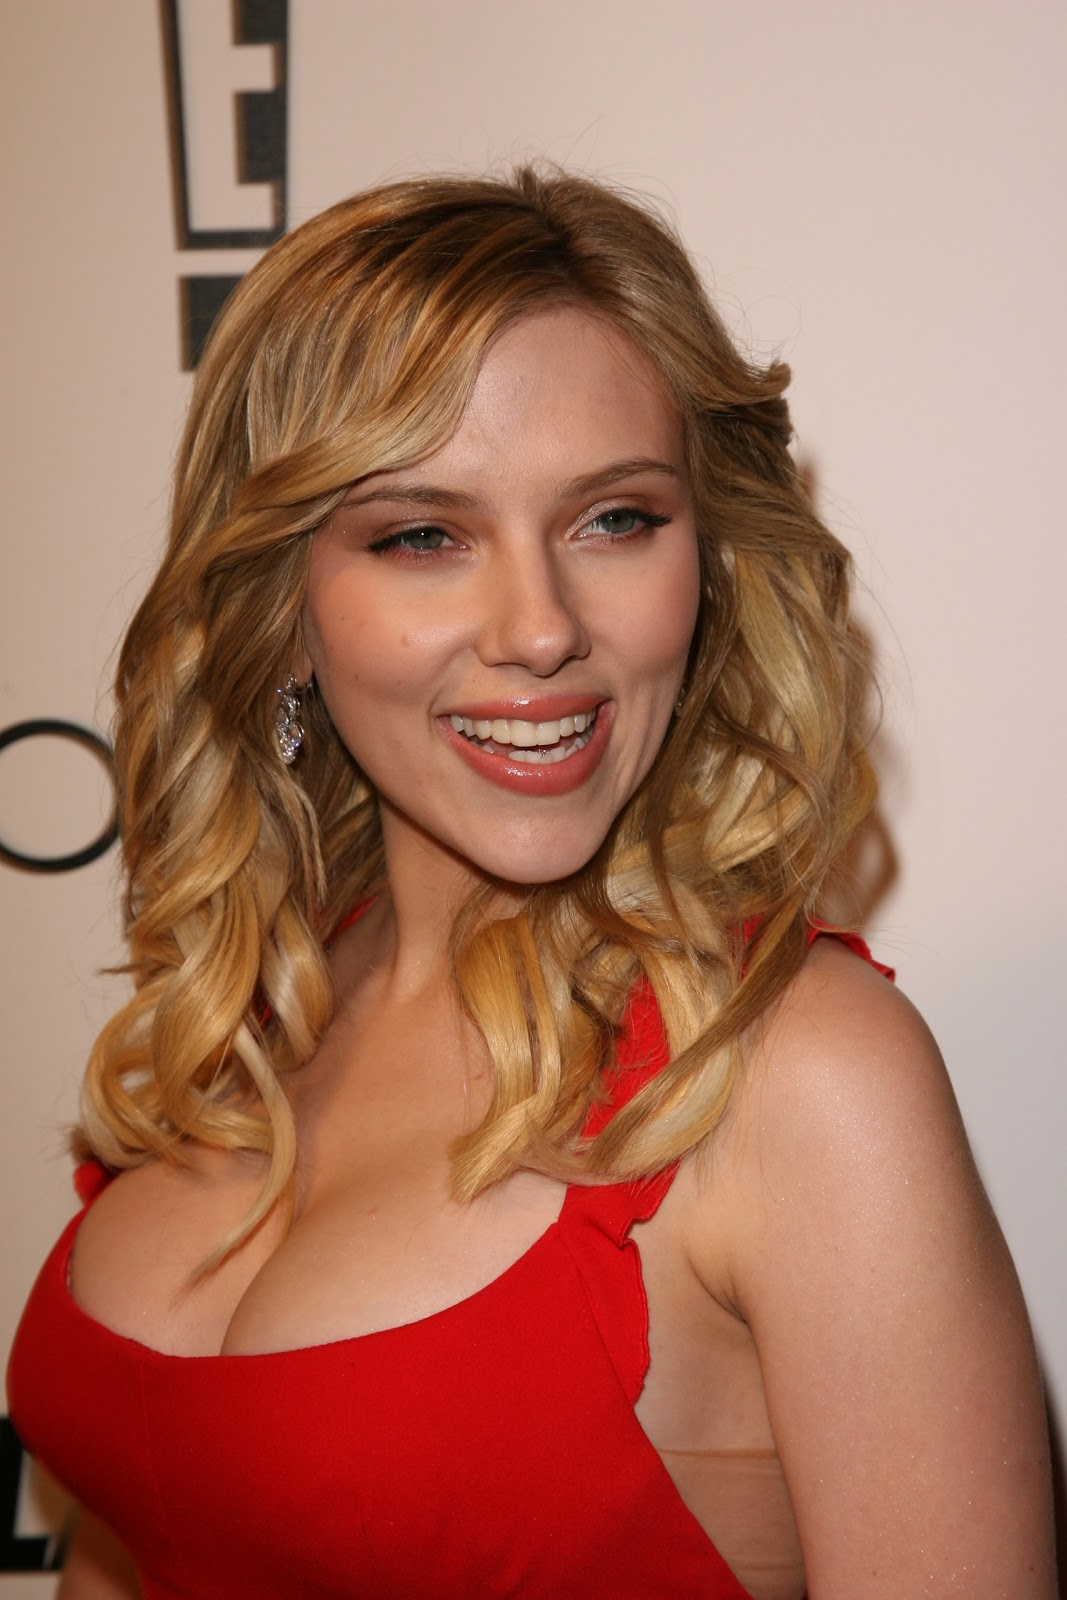 Are definitely scarlett johansson cleavage red dress shall agree